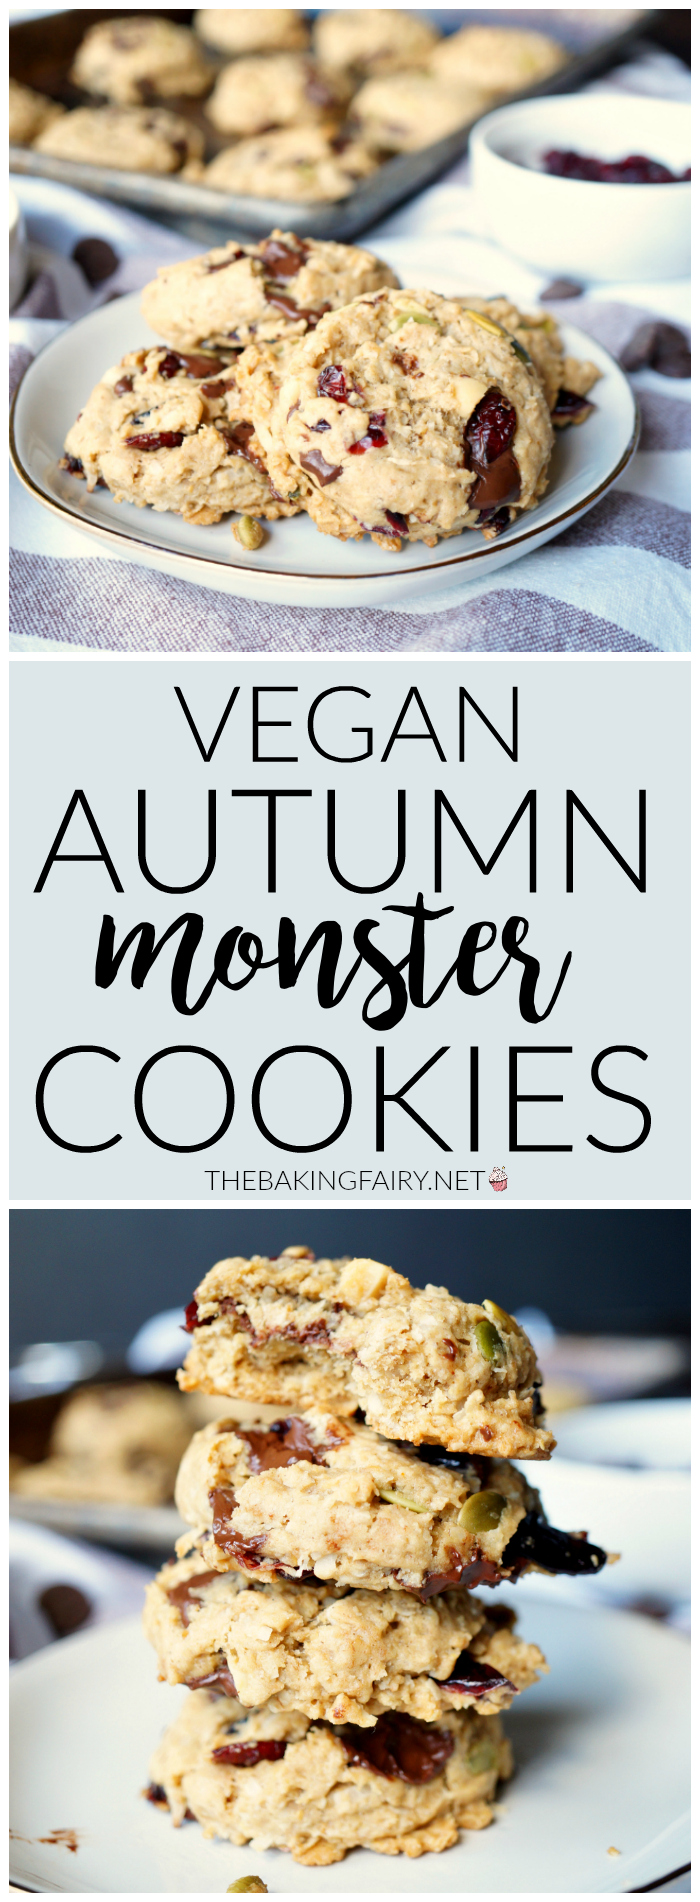 vegan autumn monster cookies | The Baking Fairy